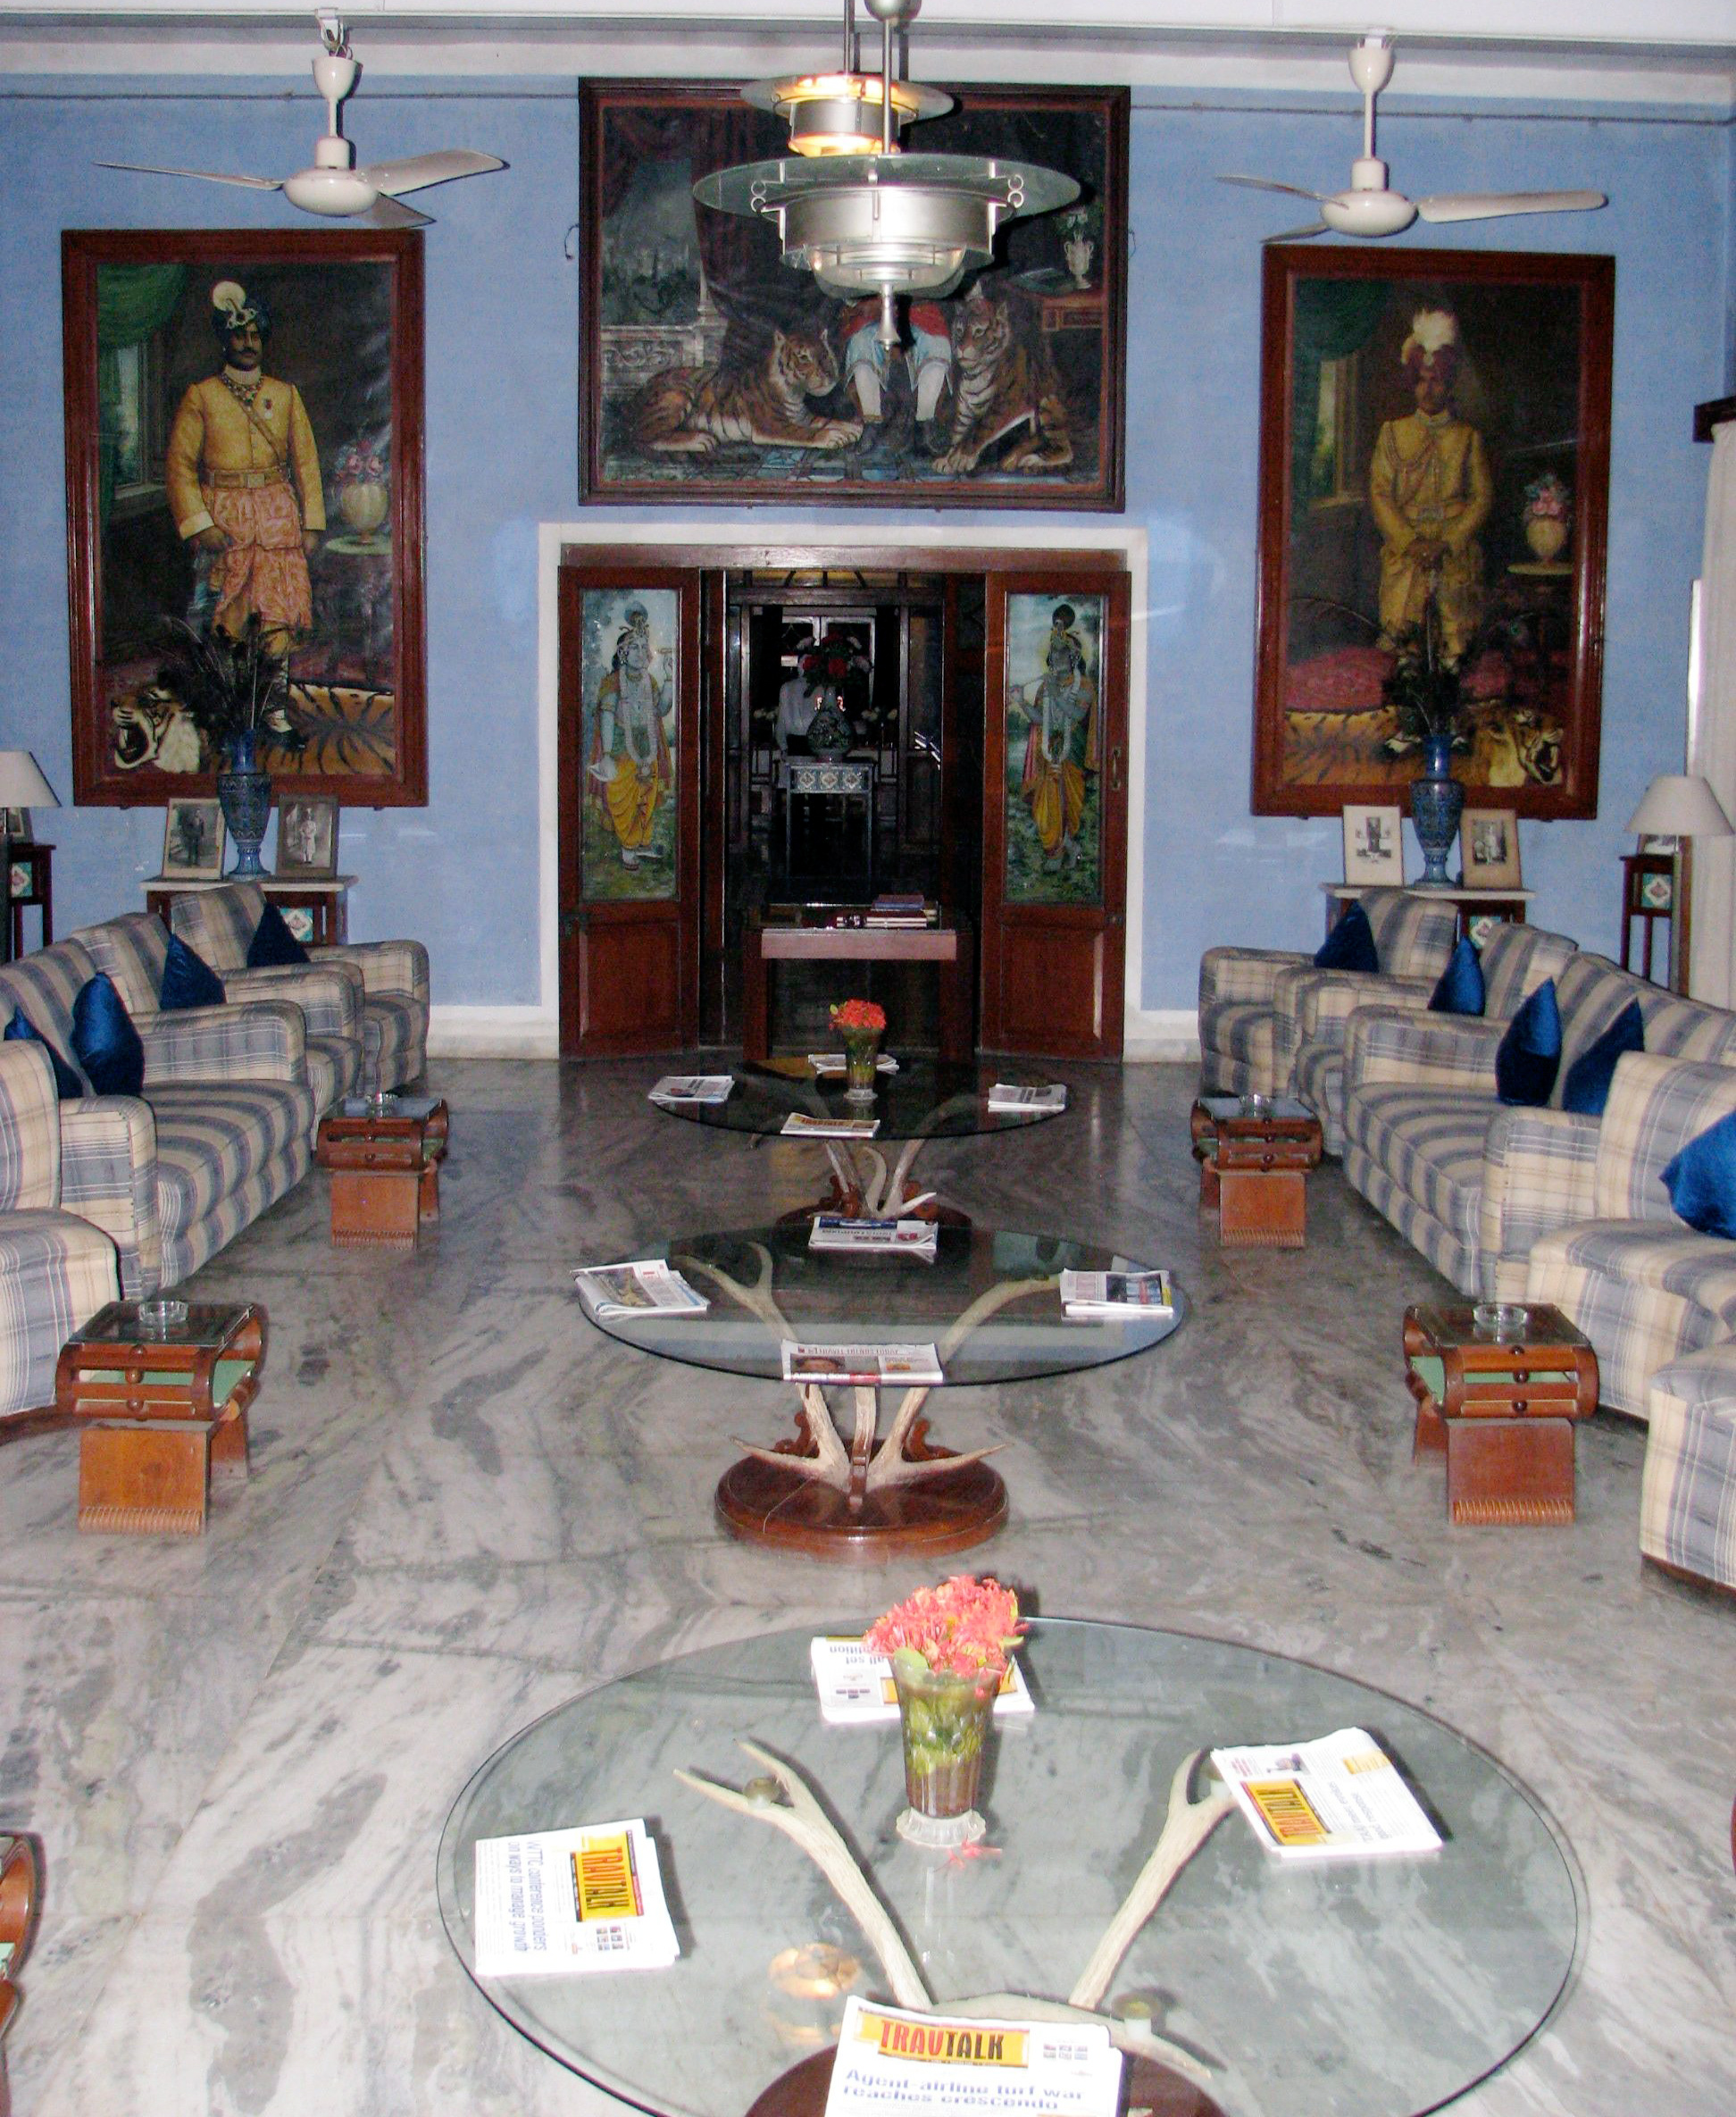 Reception Room at Maharajas Palace